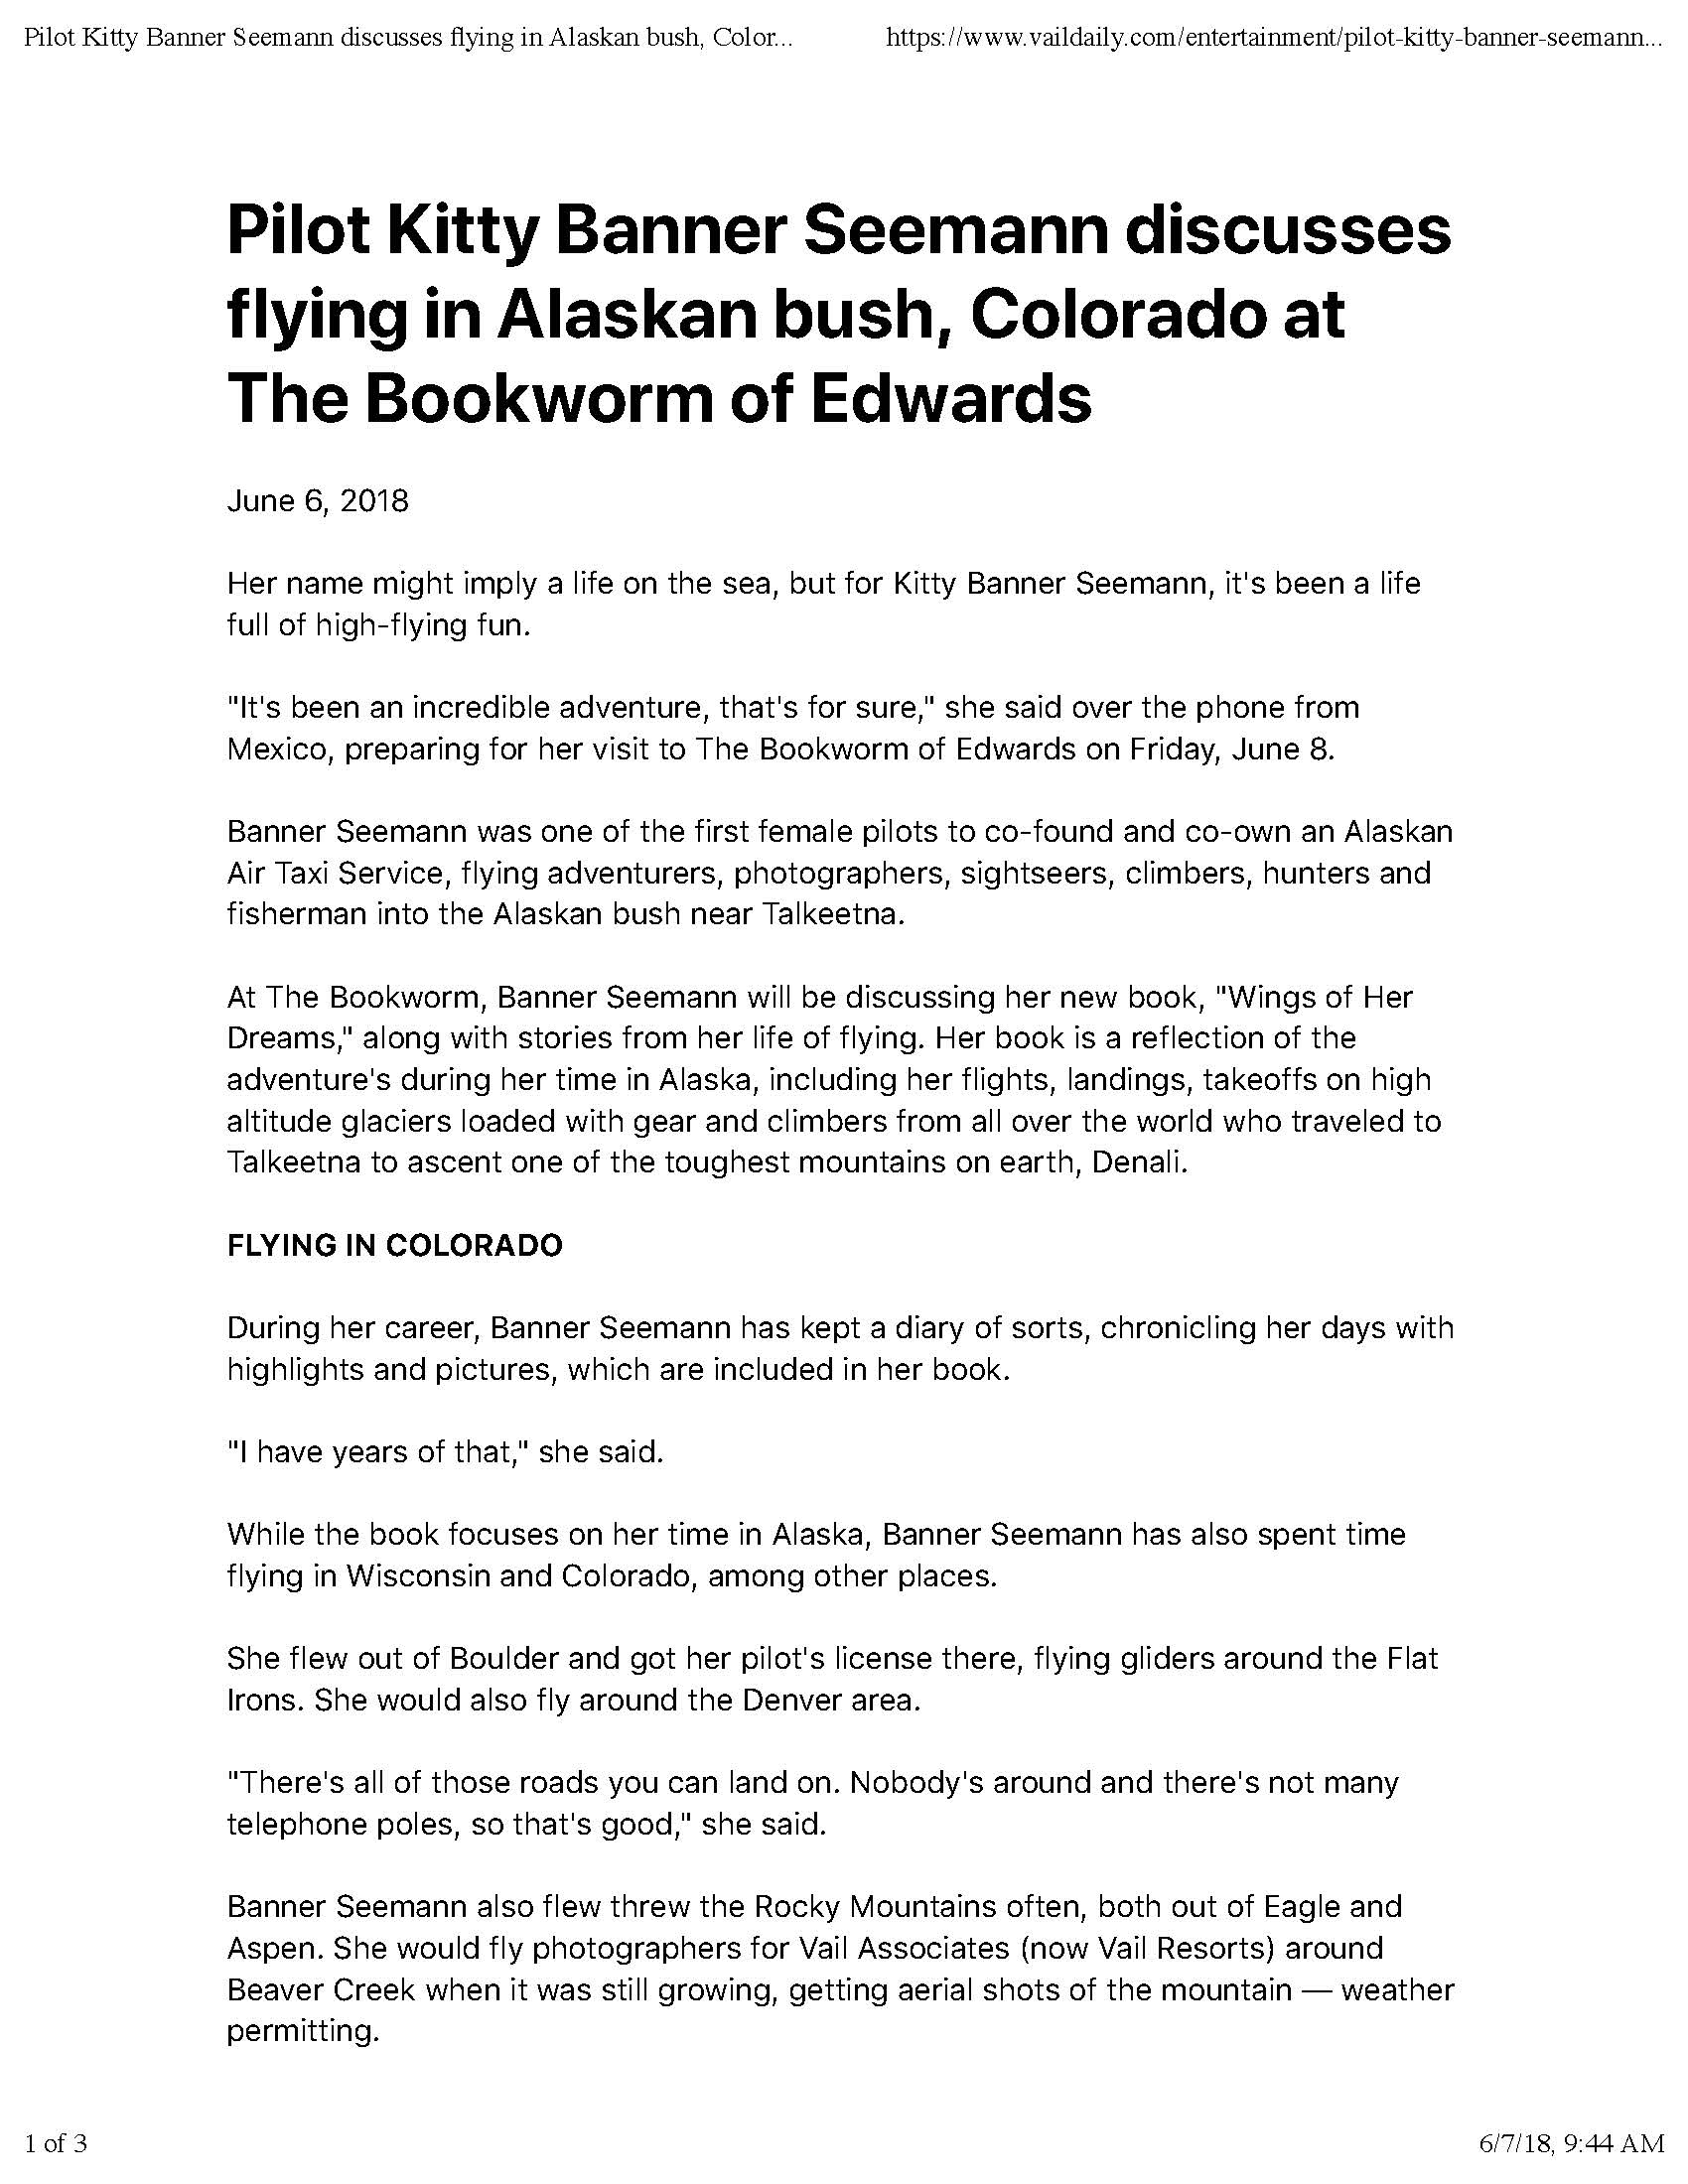 Pilot Kitty Banner Seemann discusses flying in Alaskan bush, Colorado at The Bookworm of Edwards | VailDaily.com_Page_1.jpg